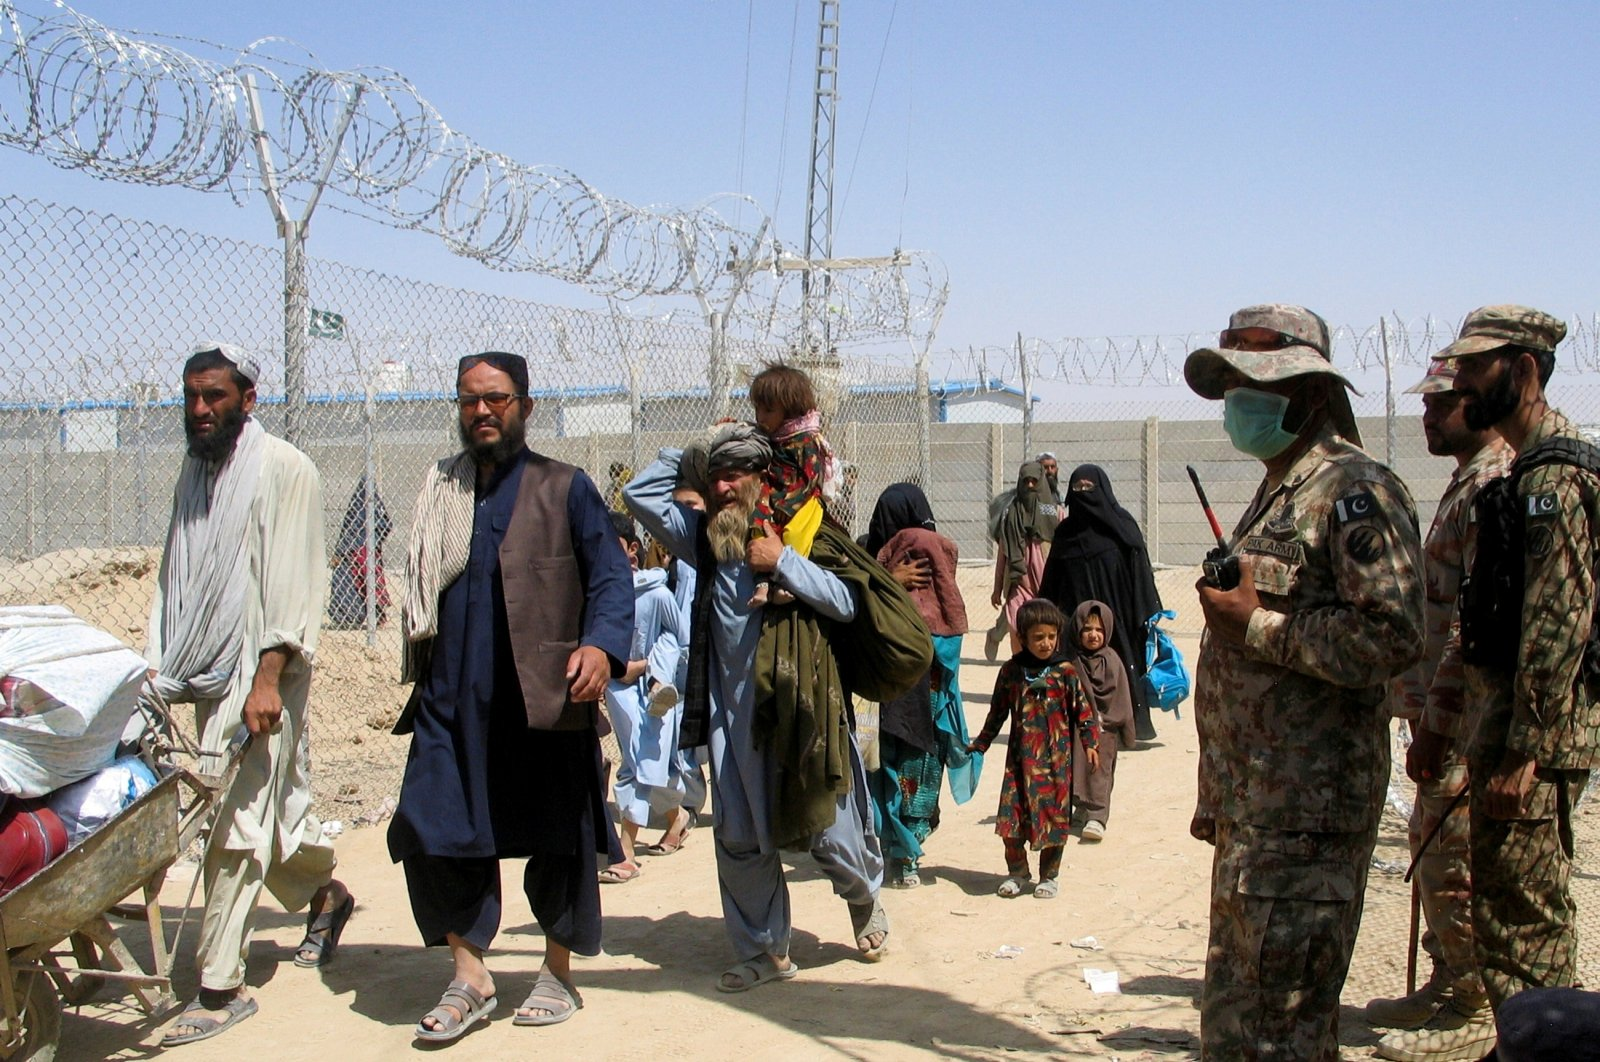 People arriving from Afghanistan make their way through the Friendship Gate crossing point at the Pakistan-Afghanistan border town of Chaman, Pakistan, Aug. 19, 2021. (Reuters/Saeed Ali Achakzai)